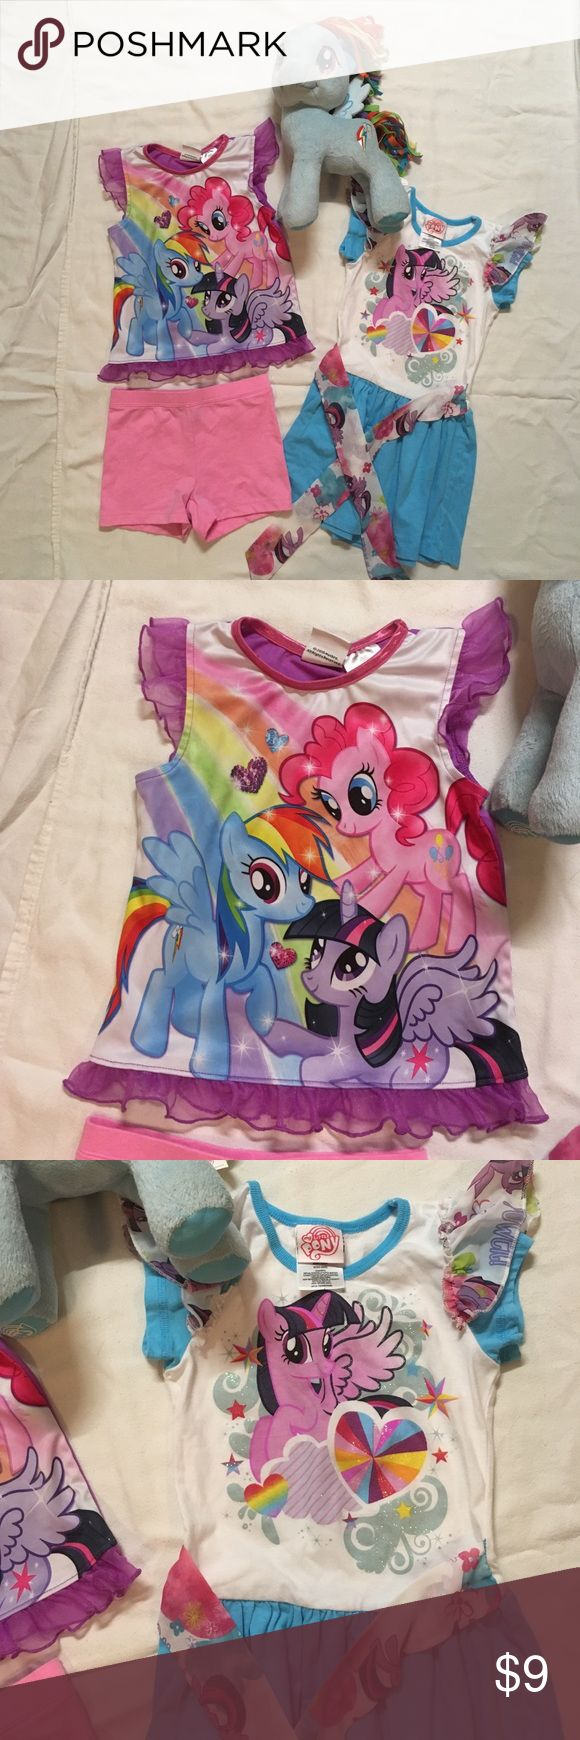 My Little Pony Summer Dress and Pajamas Bundle All items are in gently worn condition with no stains, tears, or other noted flaws unless otherwise stated. From a smoke-free home. All offers considered. The pink shorts are Basic Edition and not the original shorts that came with the pj set. I included them to make a complete set and because I forgot to add them to another lot. 😜 tags read XS 4/5. Everything pictured is included, the pony too. My Little Pony Pajamas